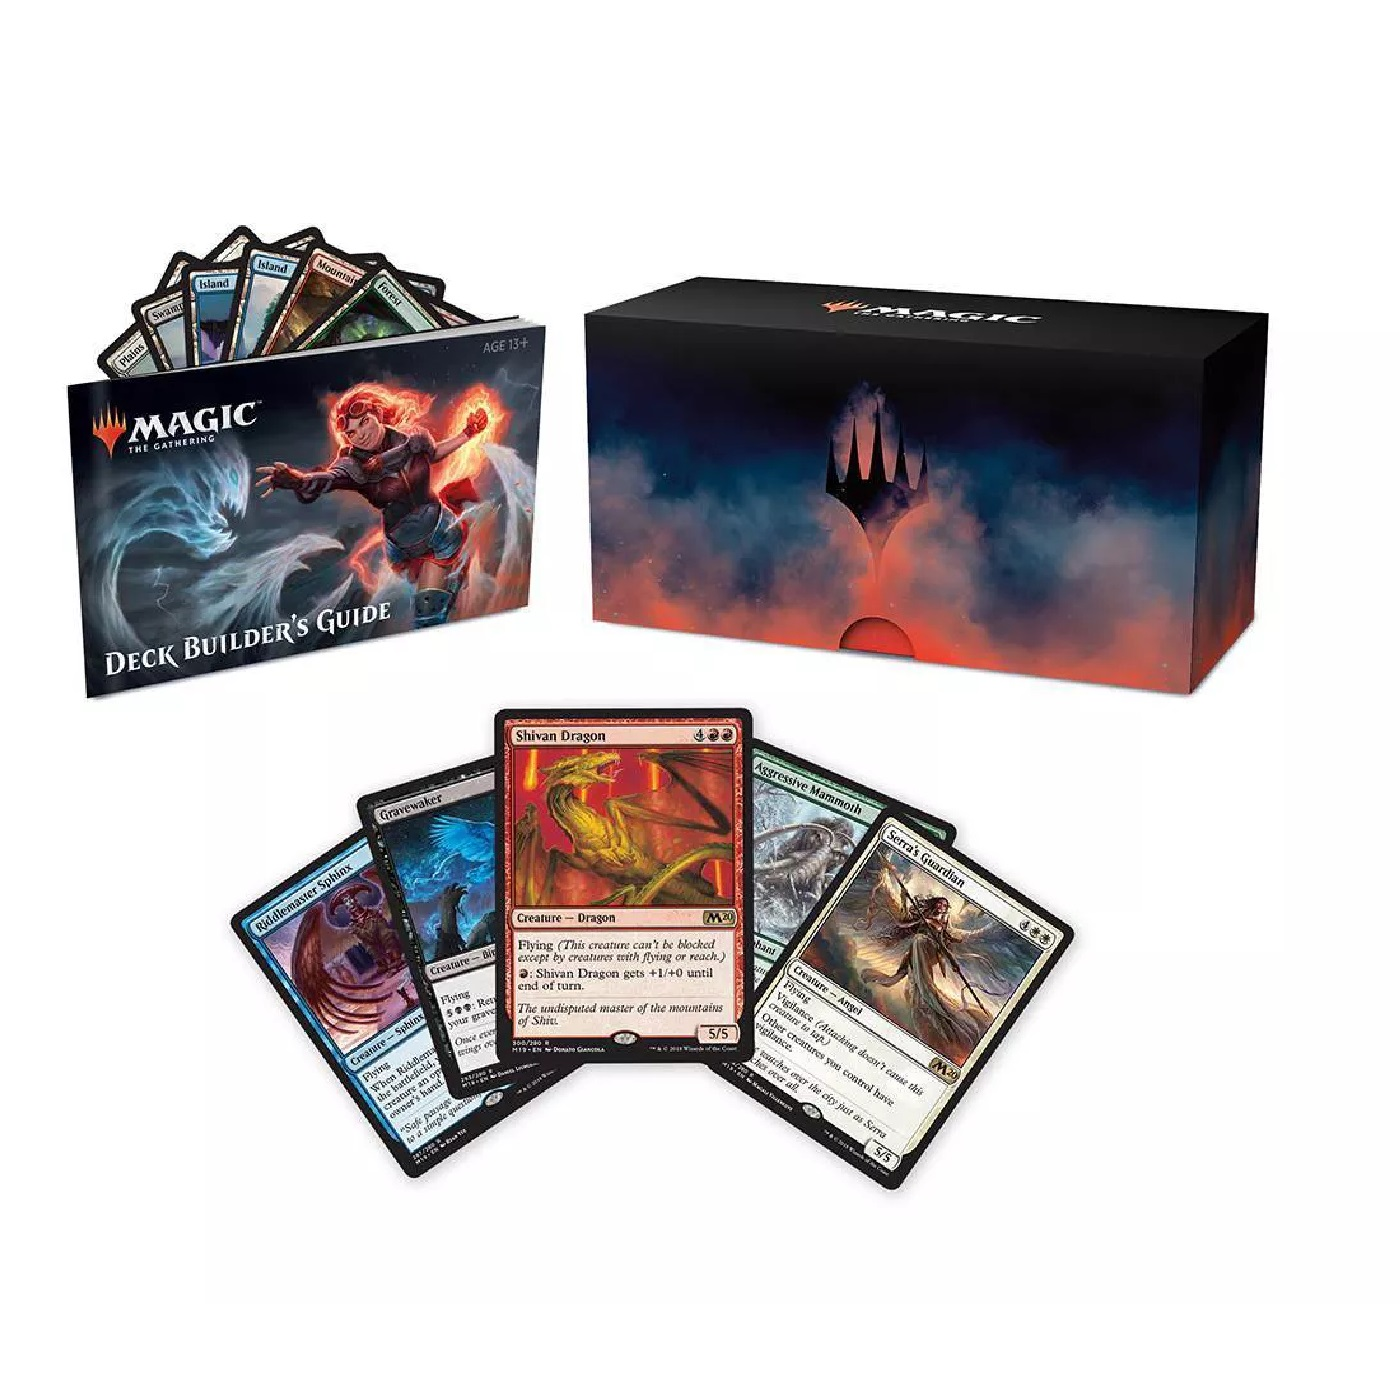 Magic: The Gathering image